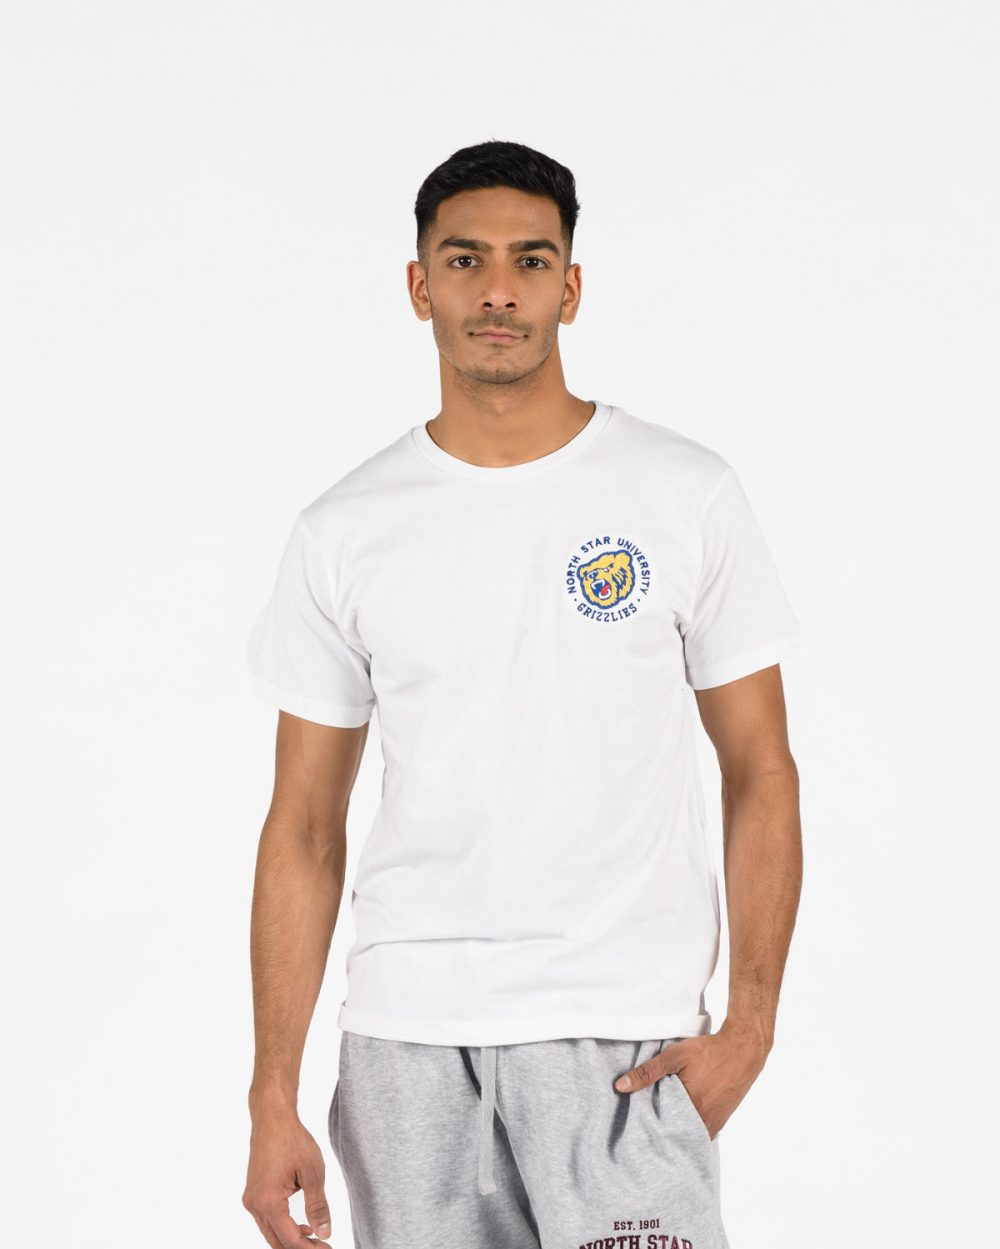 Premium T-Shirt 102 in white on man